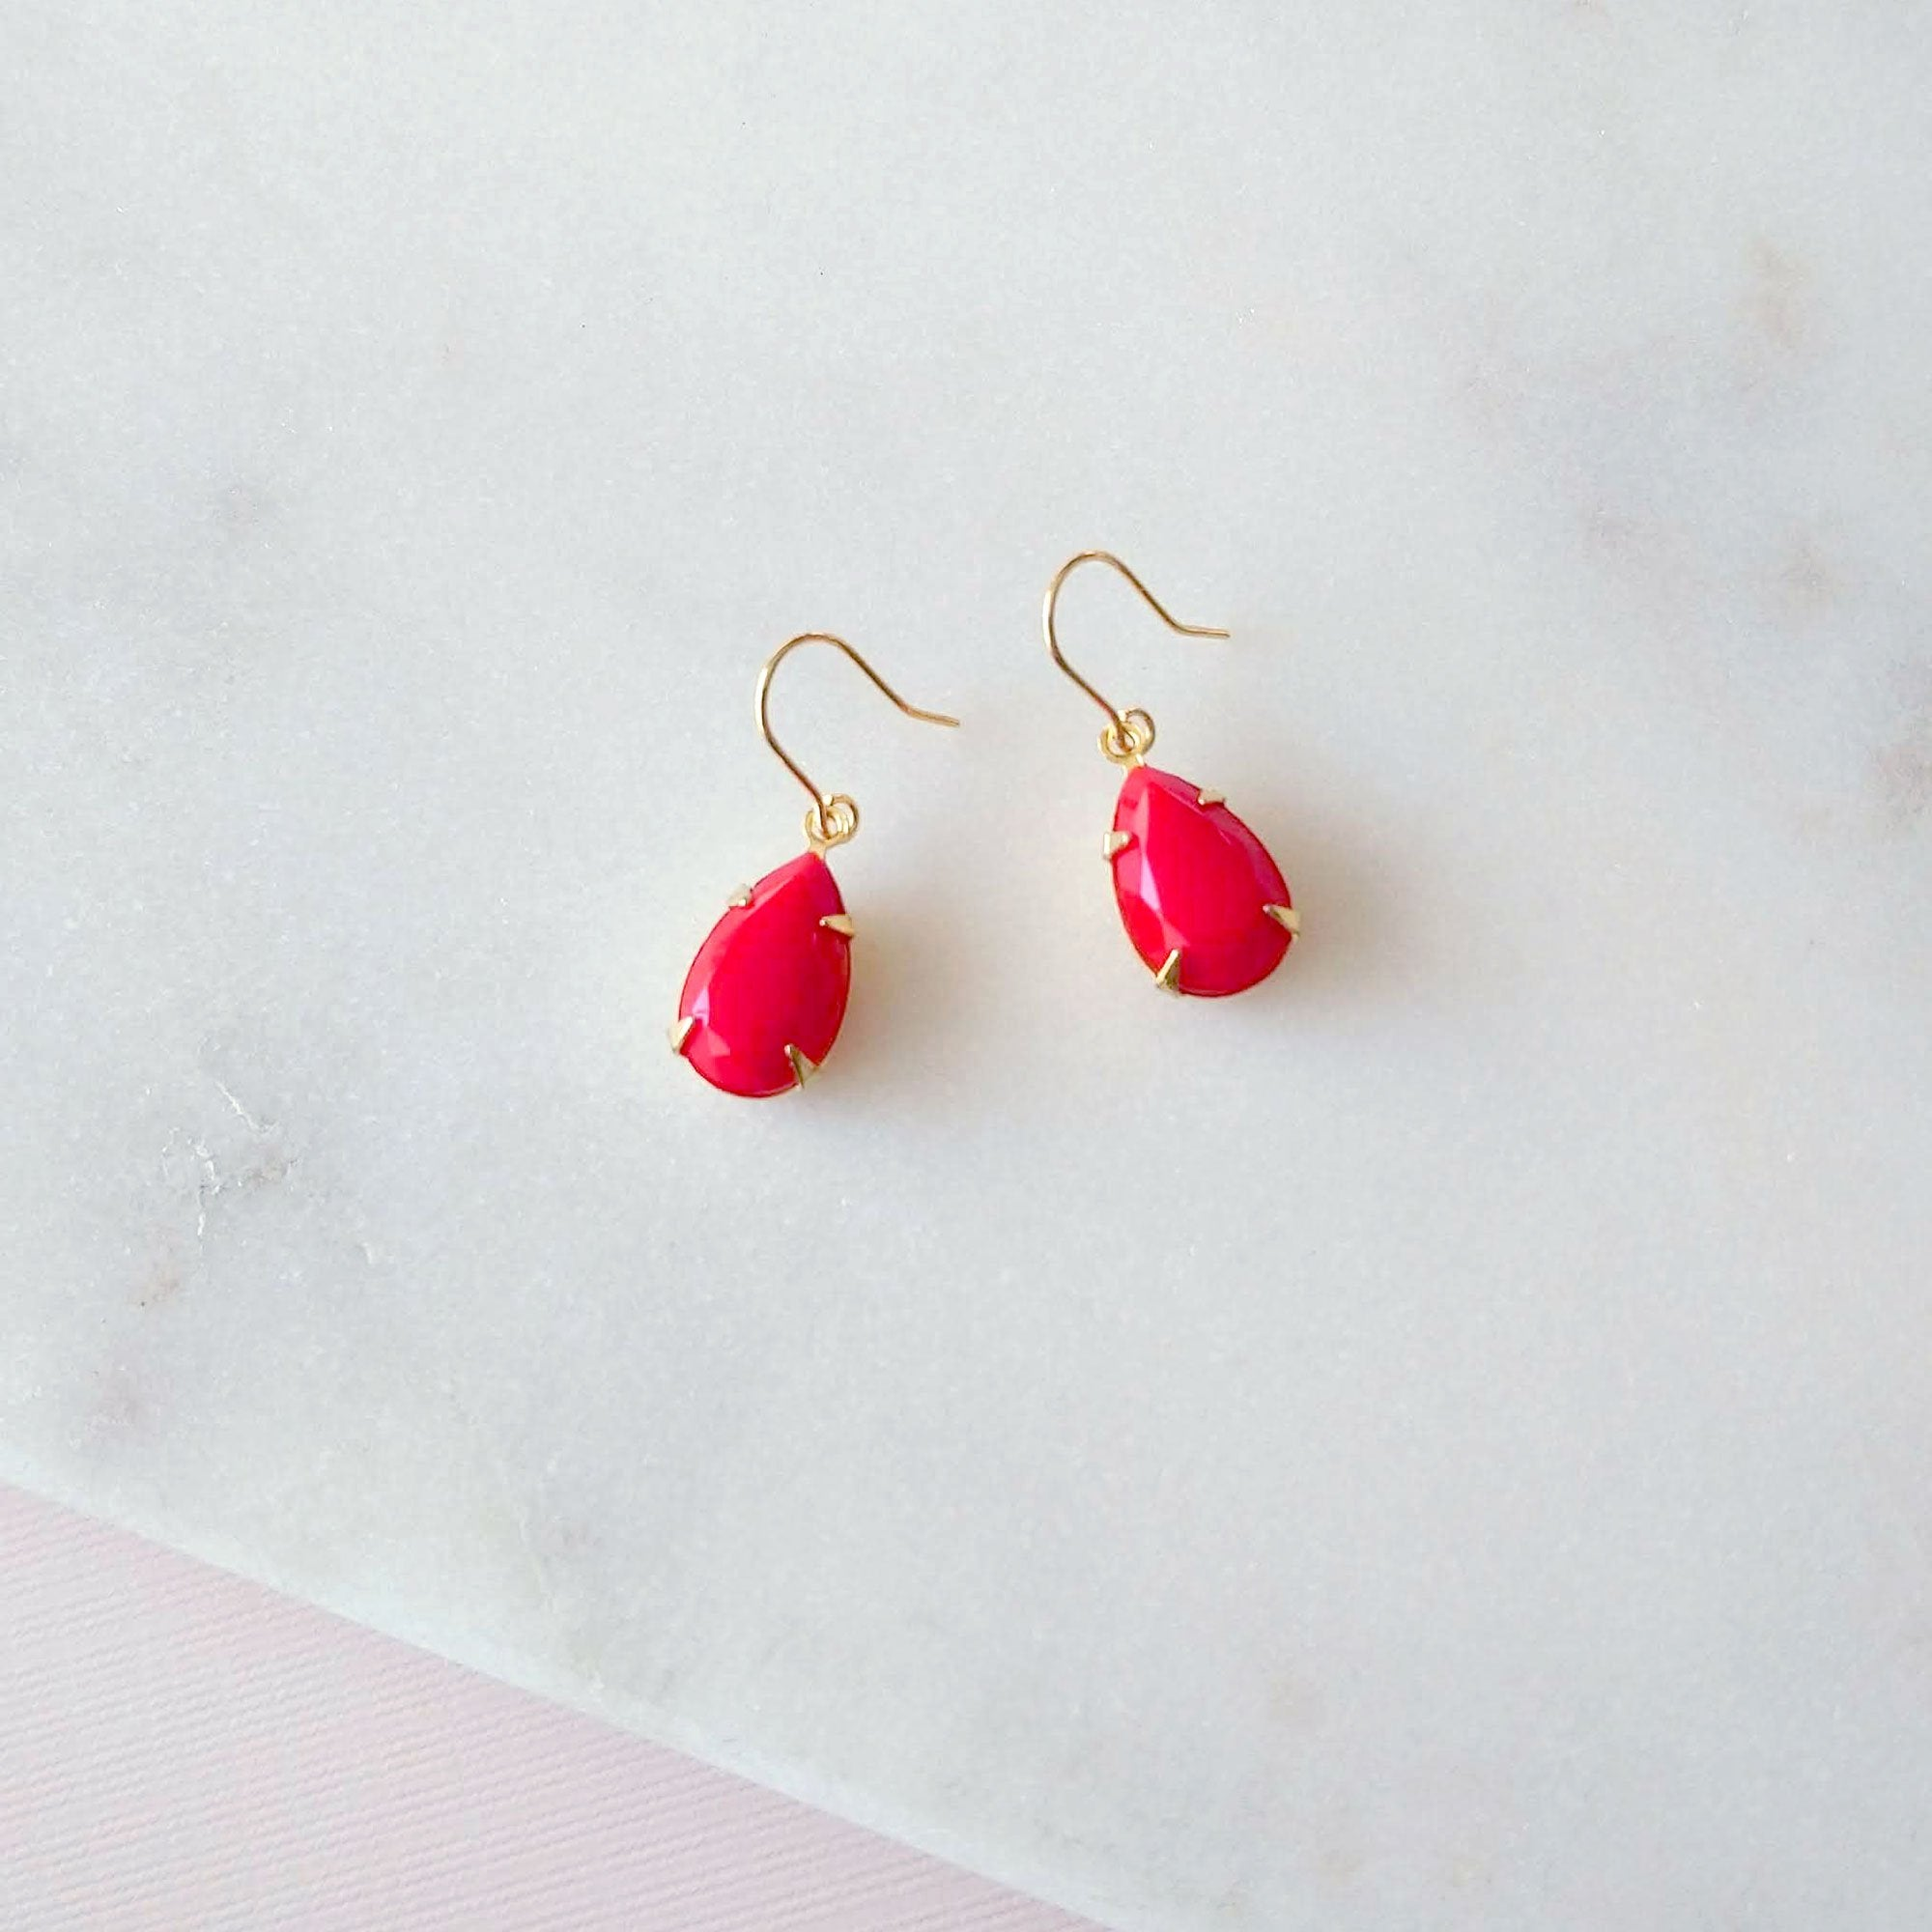 Simple red earrings